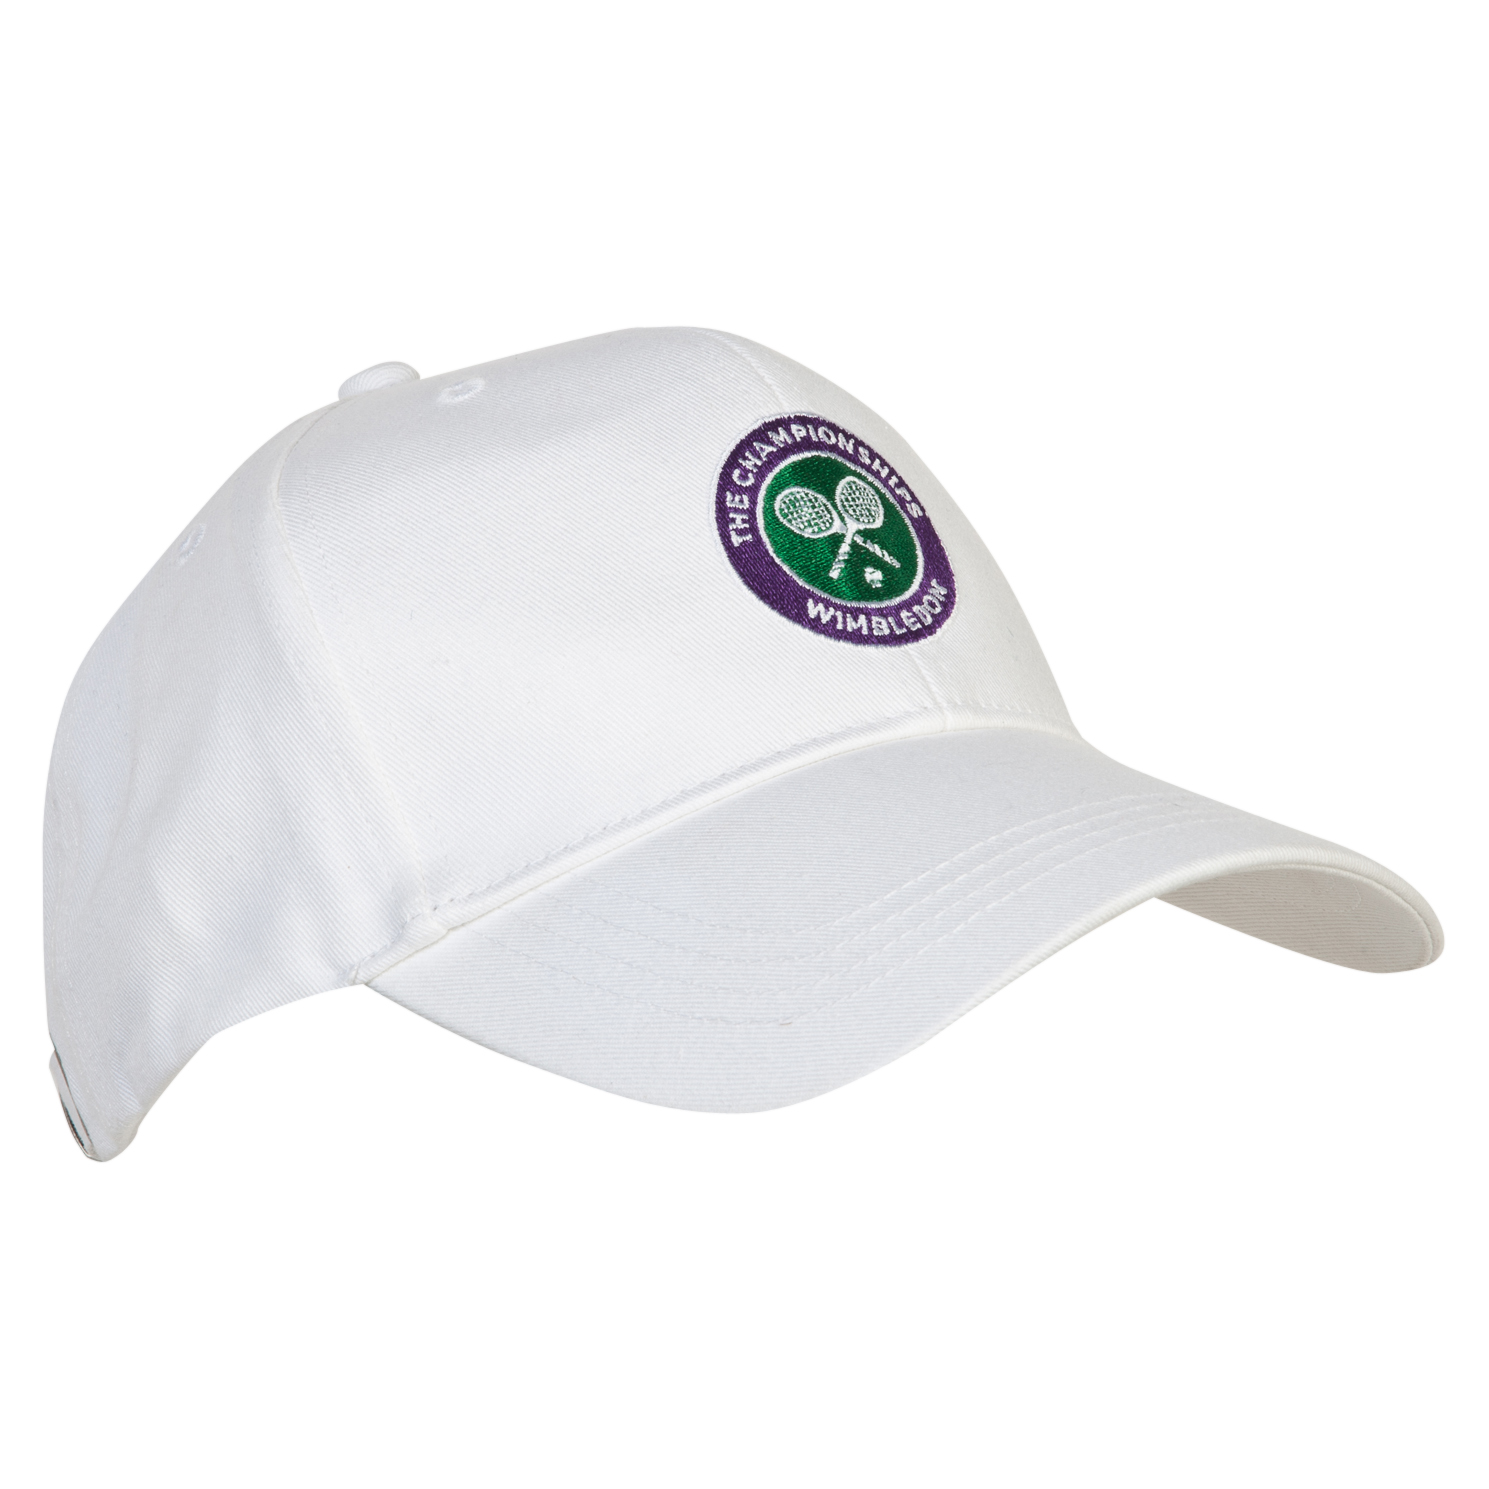 Wimbledon Crossed Rackets Cap - Kids White